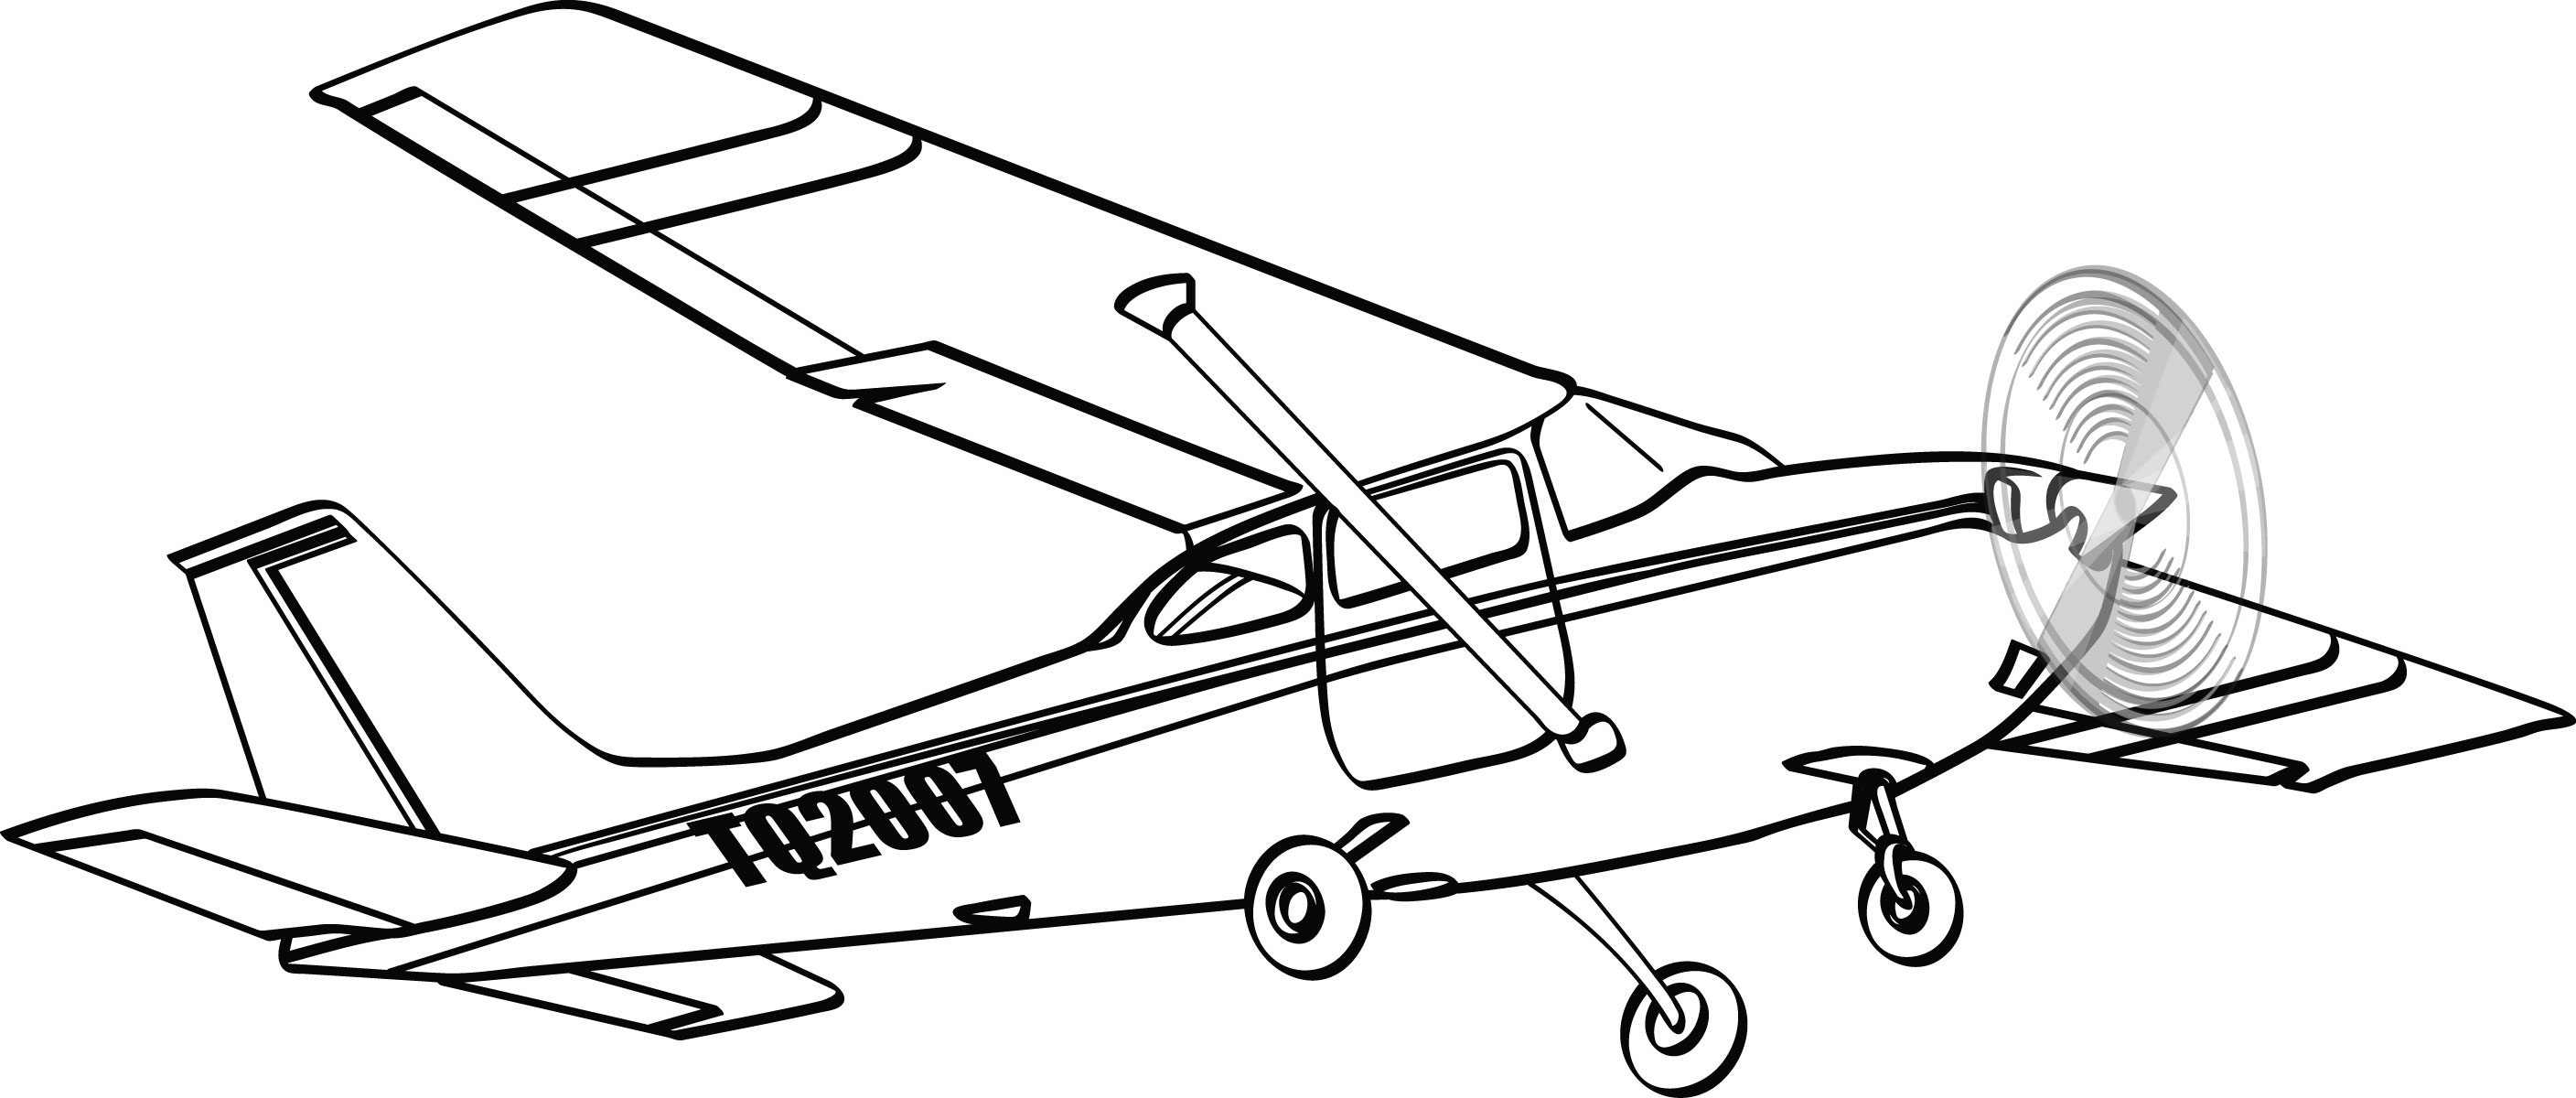 cessna 406 diagram thermal fuse wiring clipart collection download this image